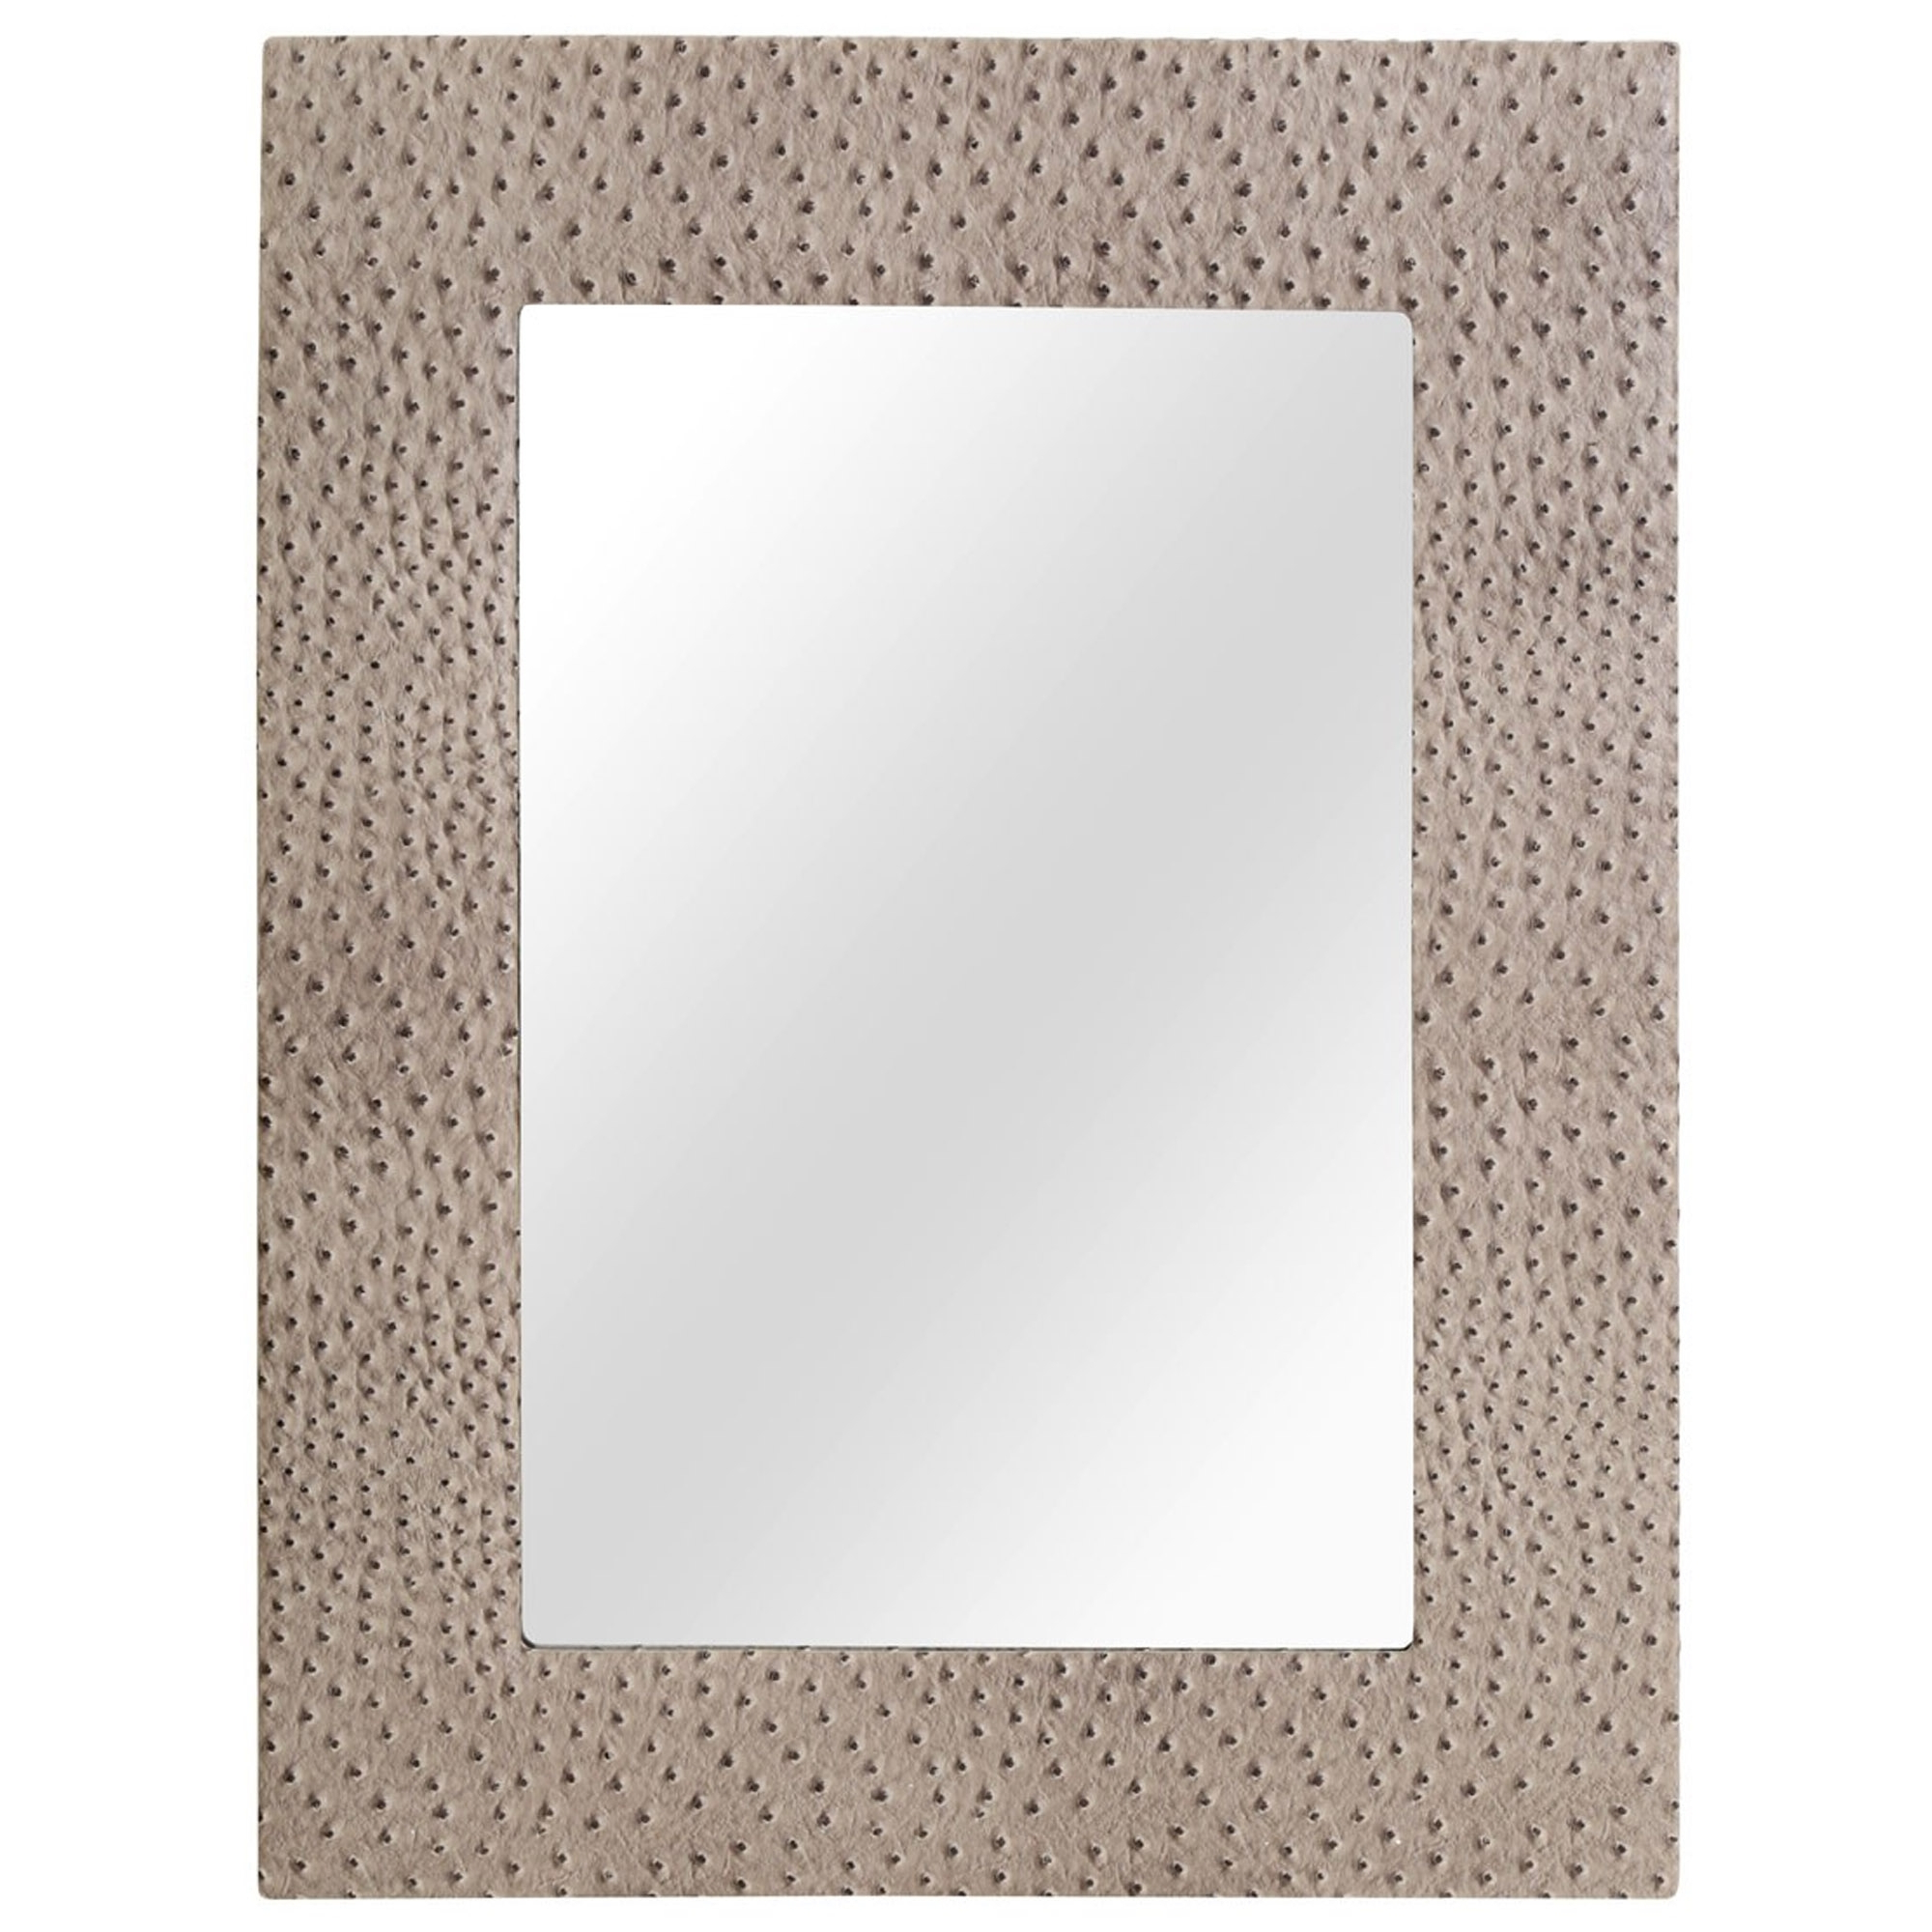 Leather Wall Mirrors Throughout Preferred Ostrich Leather Wall Mirror (Gallery 1 of 20)